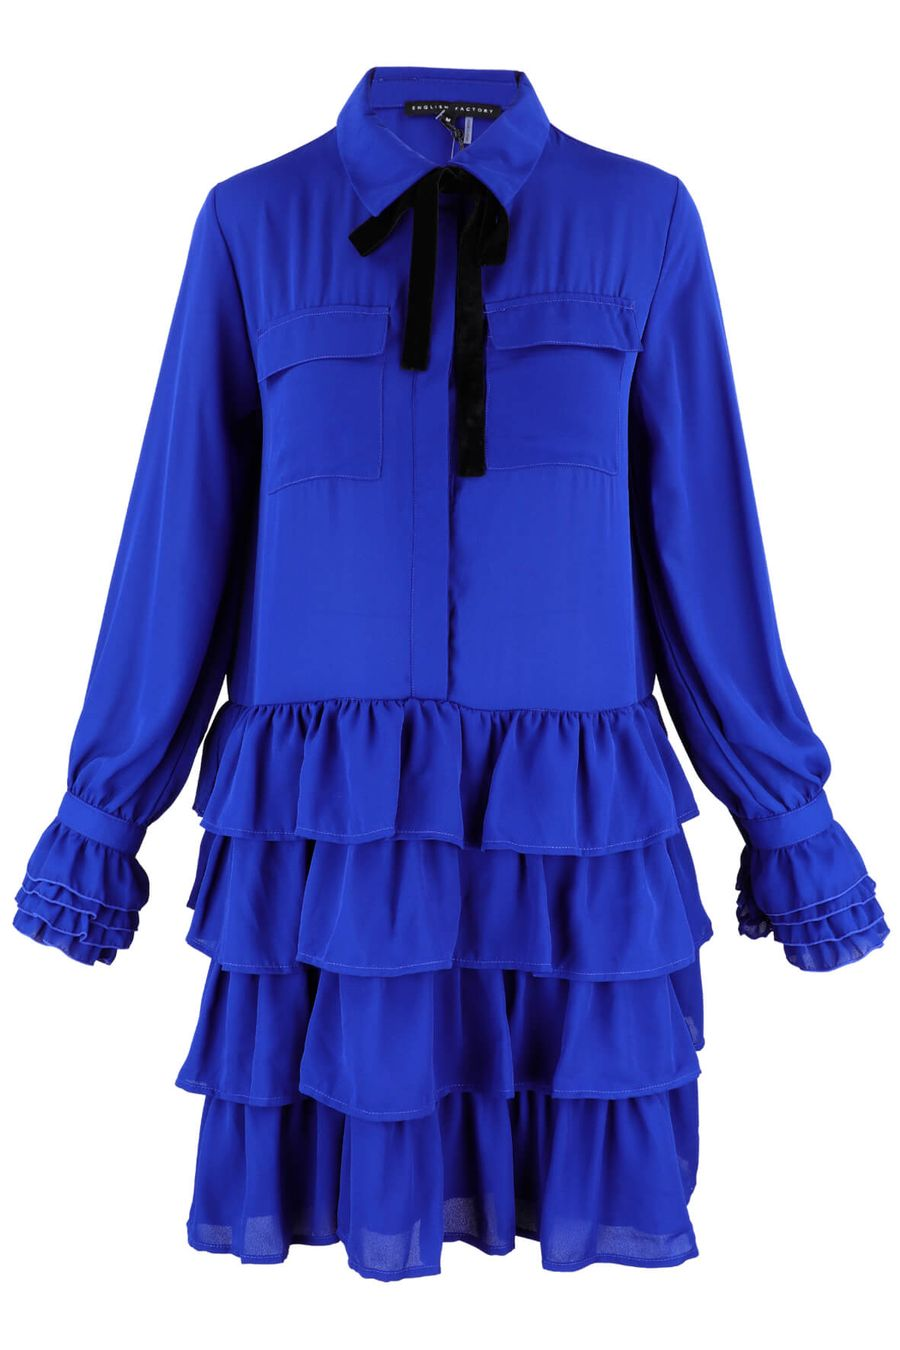 english-factory-tiered-ruffle-shirt-dress-with-tie-1